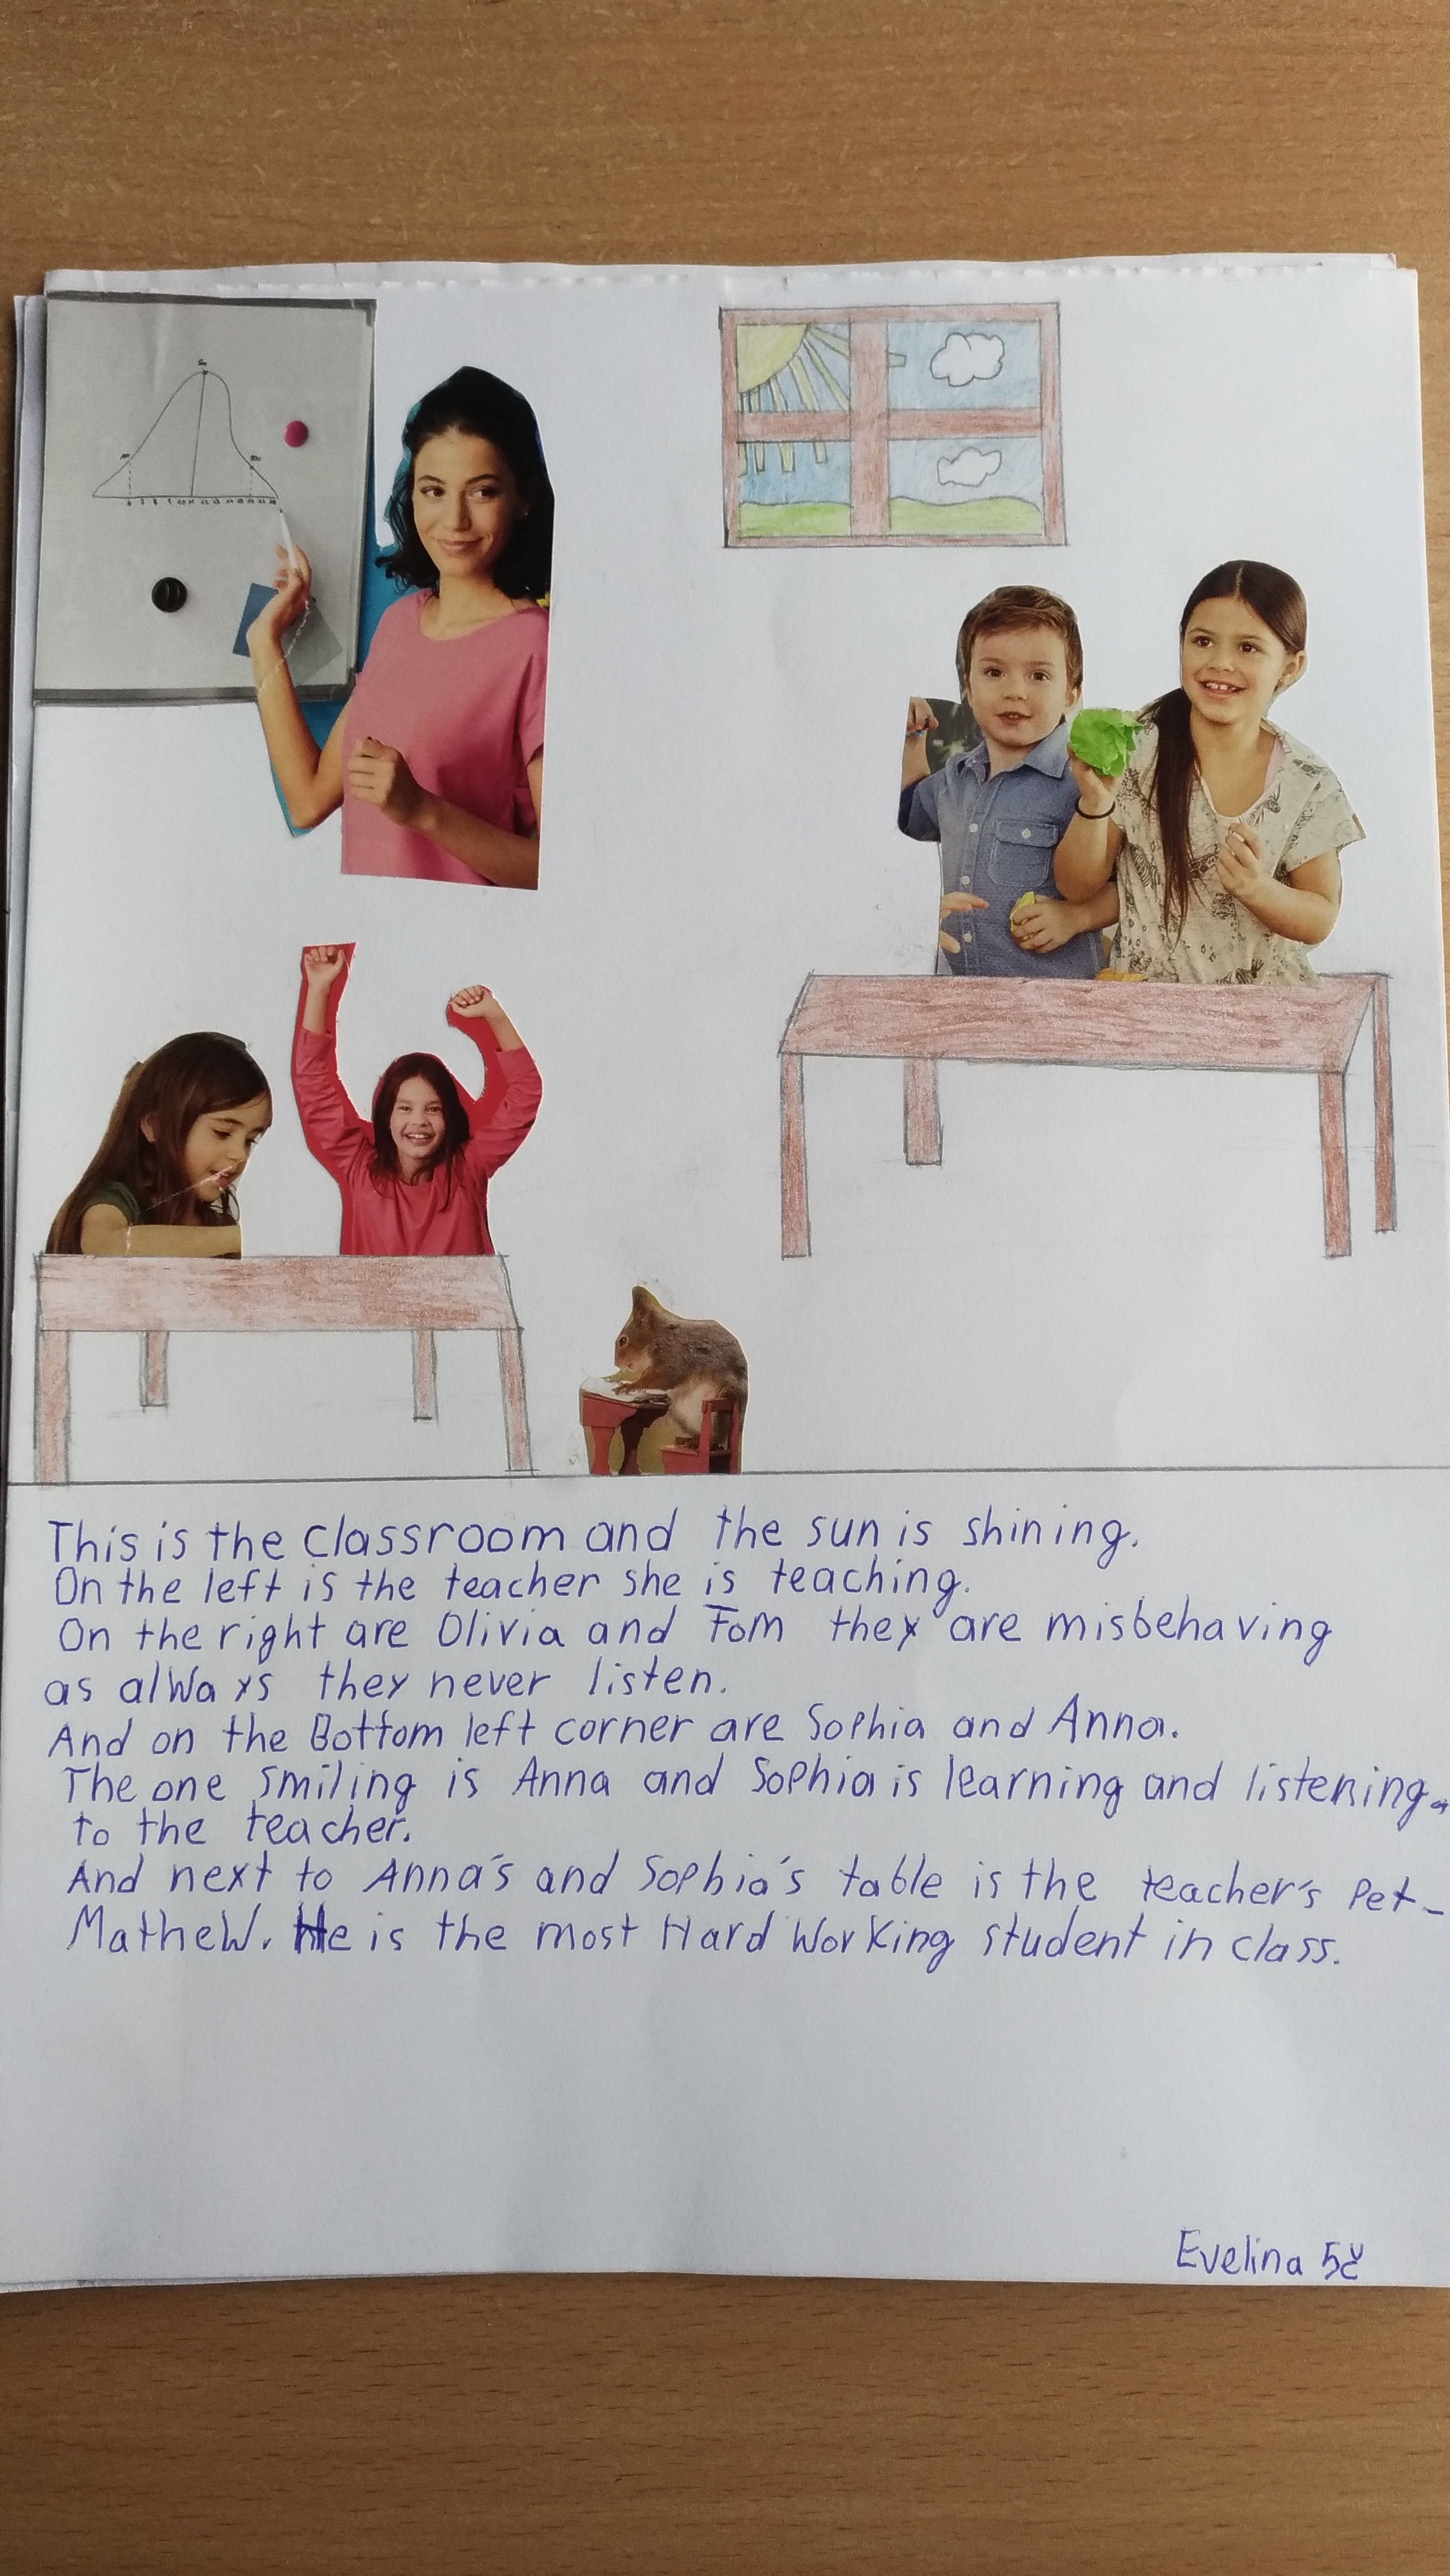 present-continuous-story-Level-A1-Grade-5-1